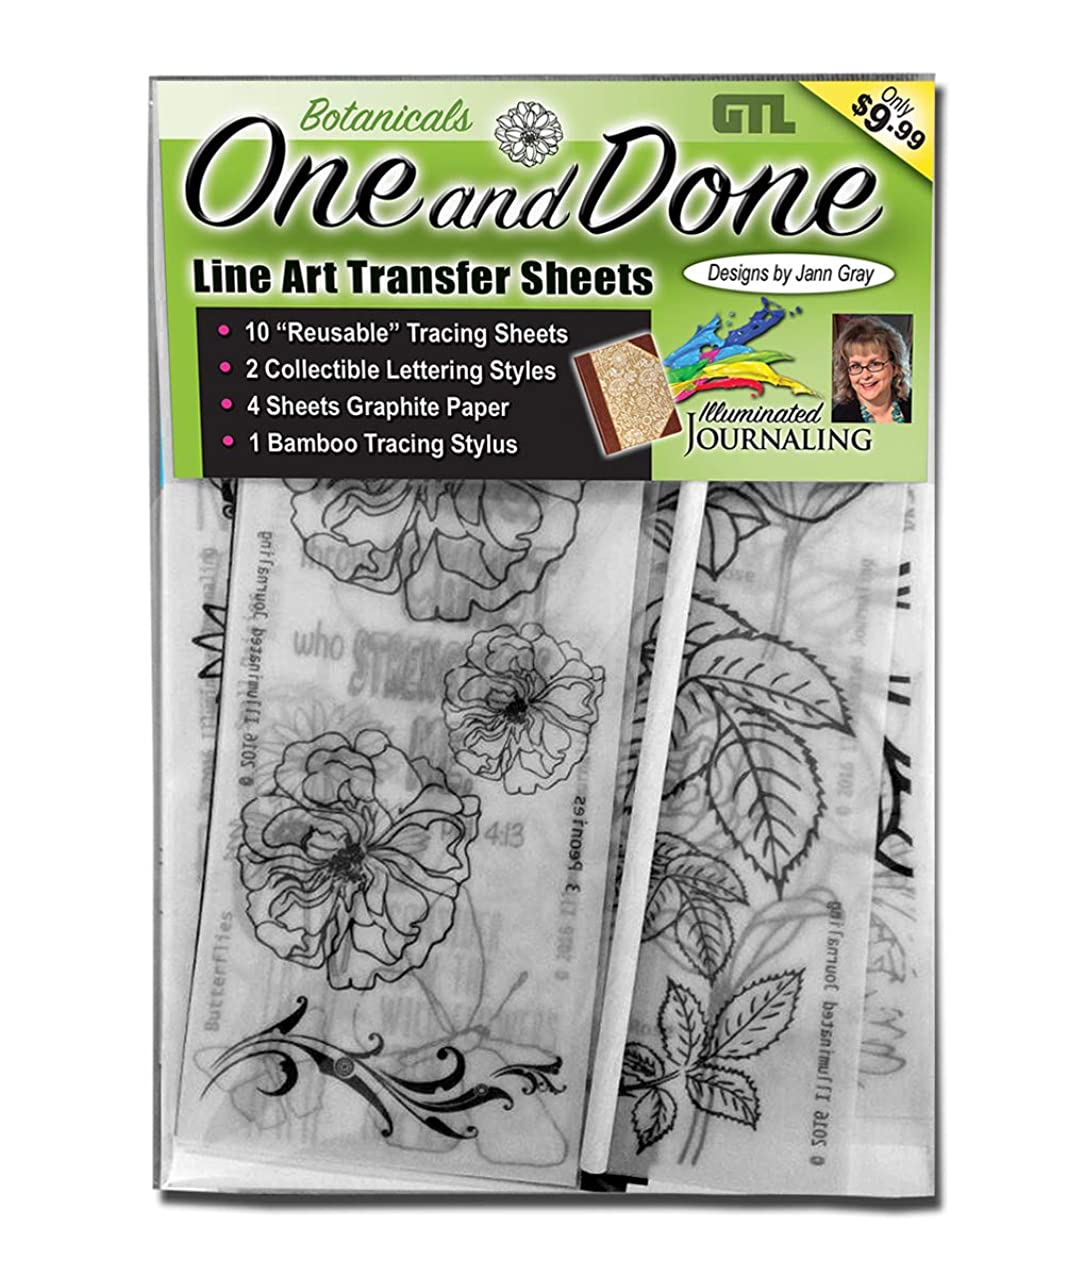 One and Done Line Art Transfer Sheets (Botanicals)